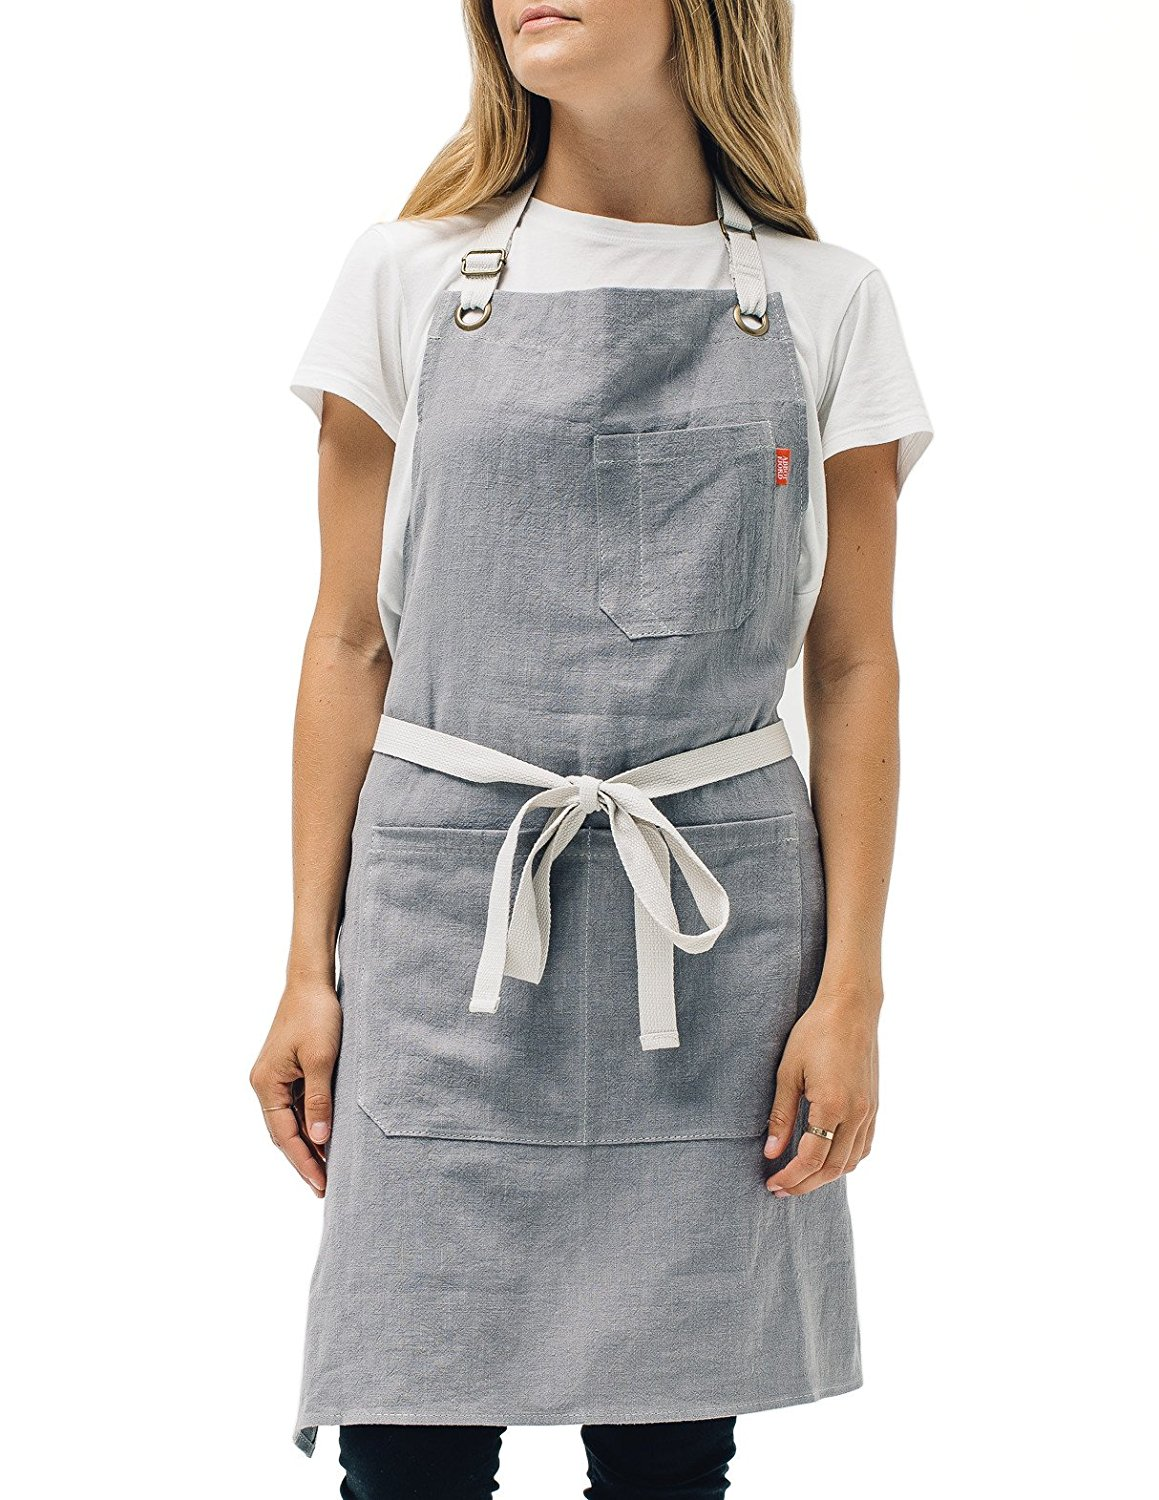 1. Linen Kitchen Apron by Abbot Fjord